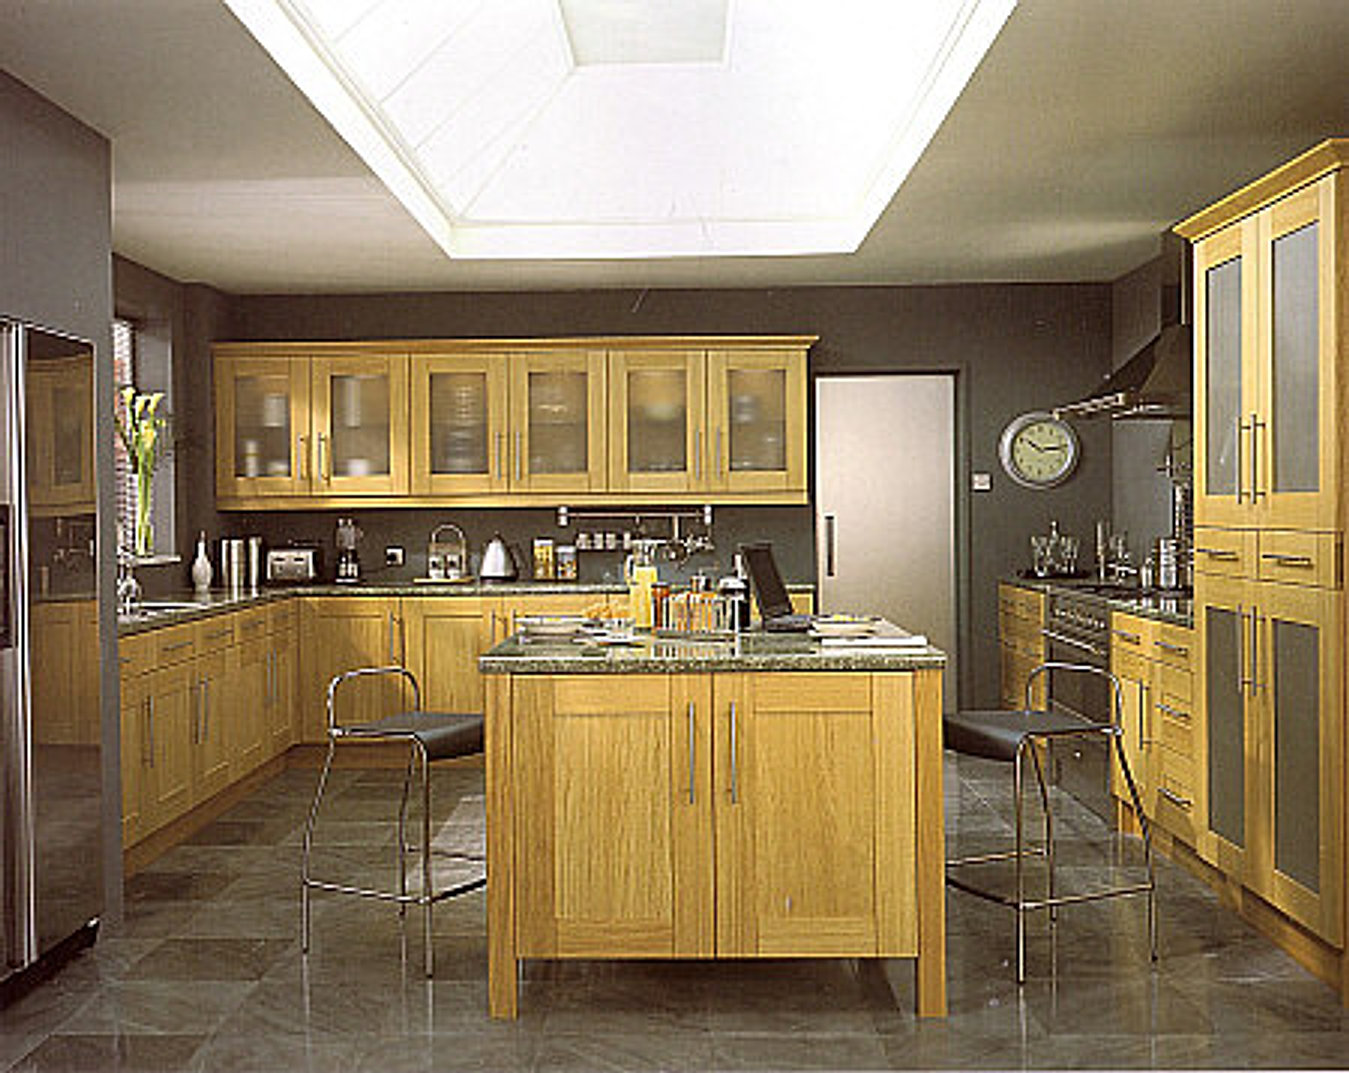 our services include custom kitchen cabinets custom bath cabinets